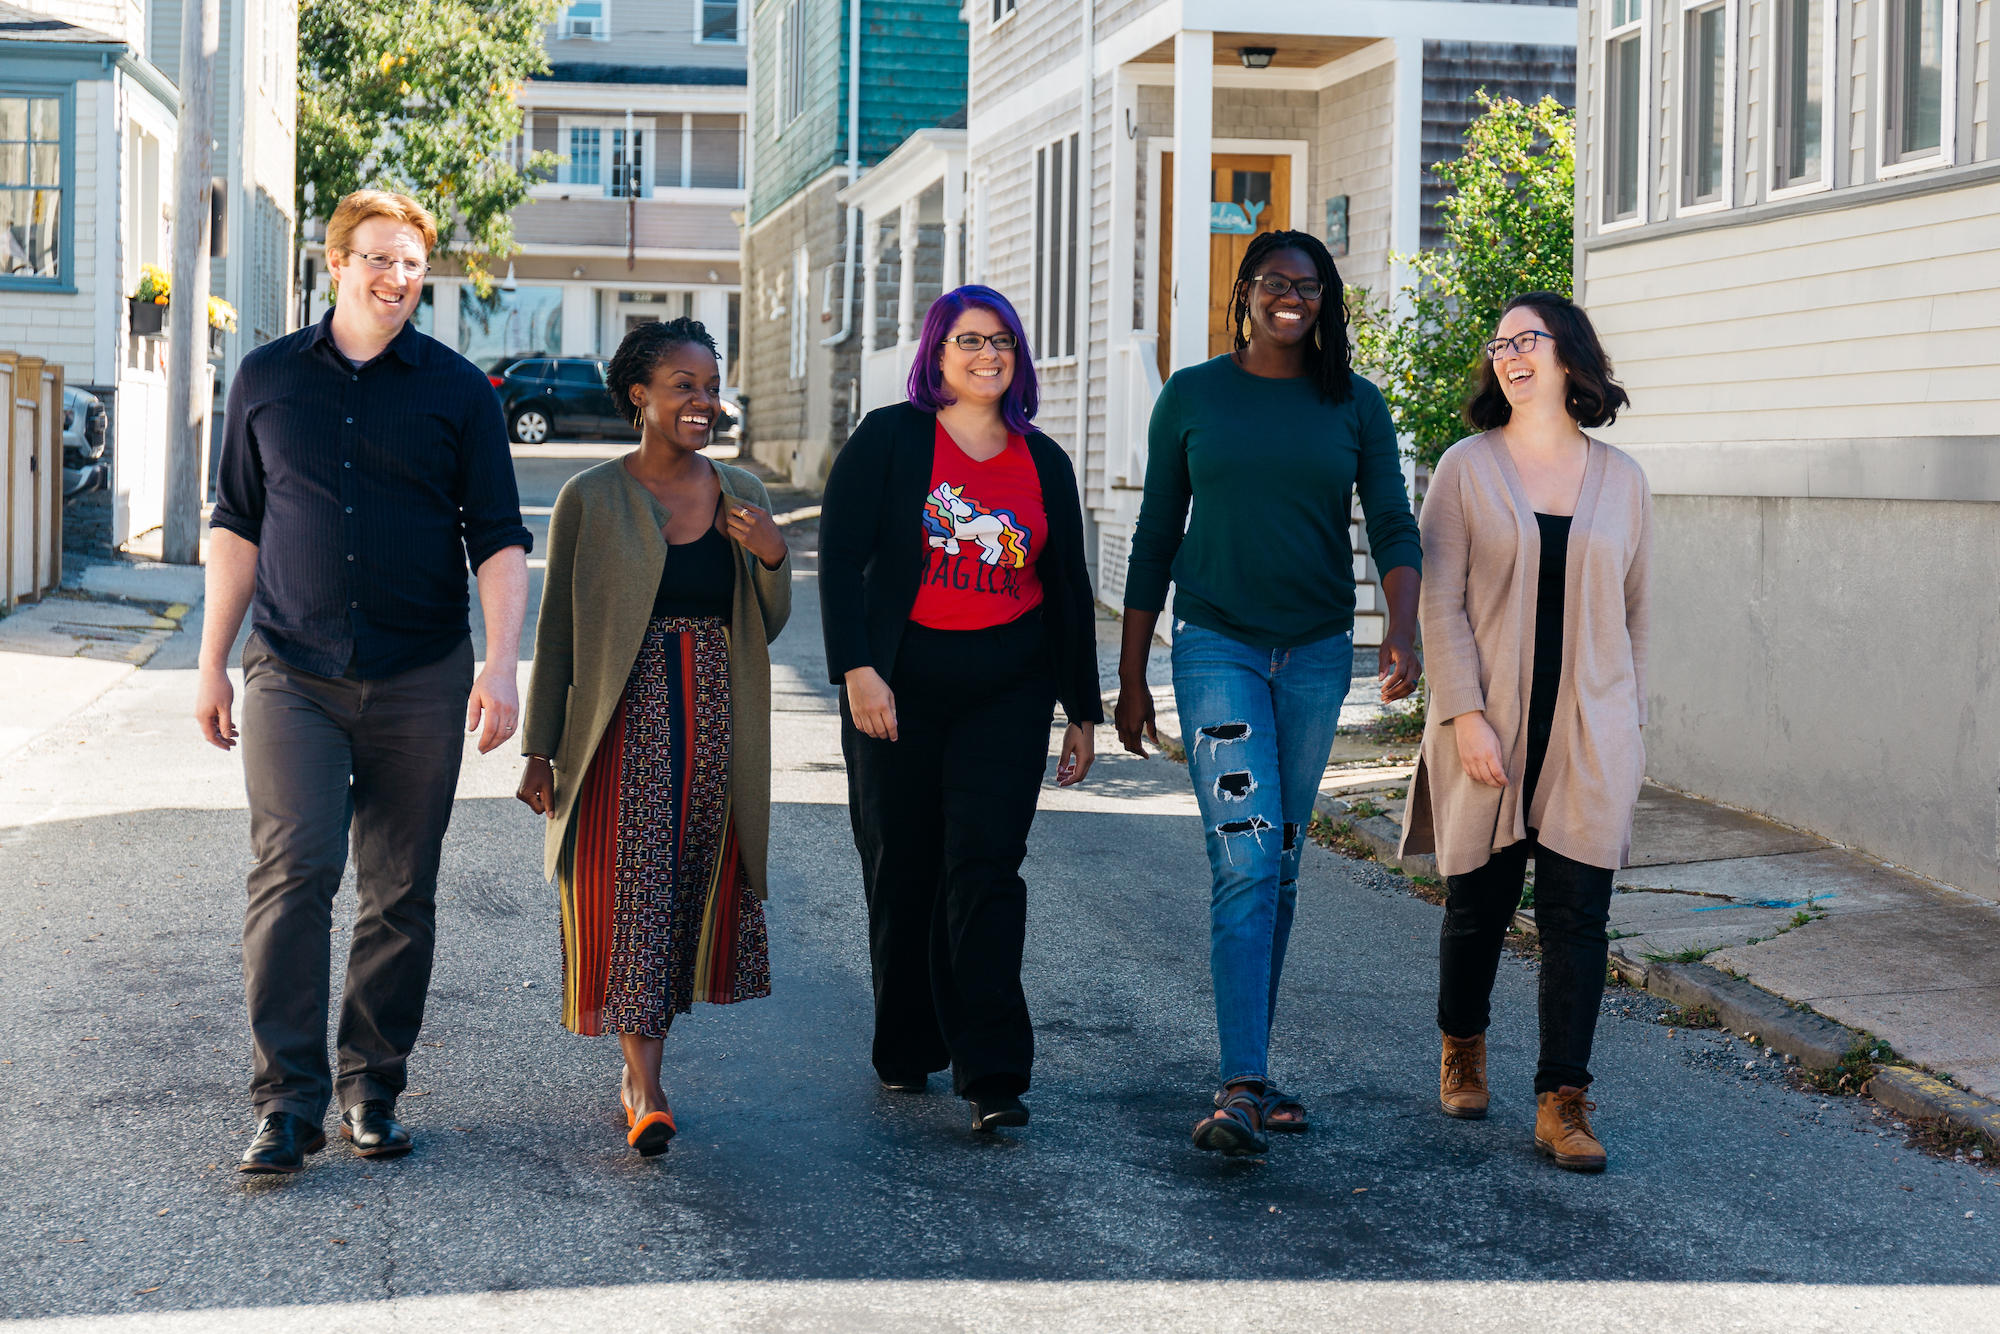 5 members of the Pixels for Humans team and partners walking down a sunny street with confidence. From left to right: Jim ONeill, Tricia Douglas, Heather ONeill, Hailey Thomas, and Melanie Scroggins.